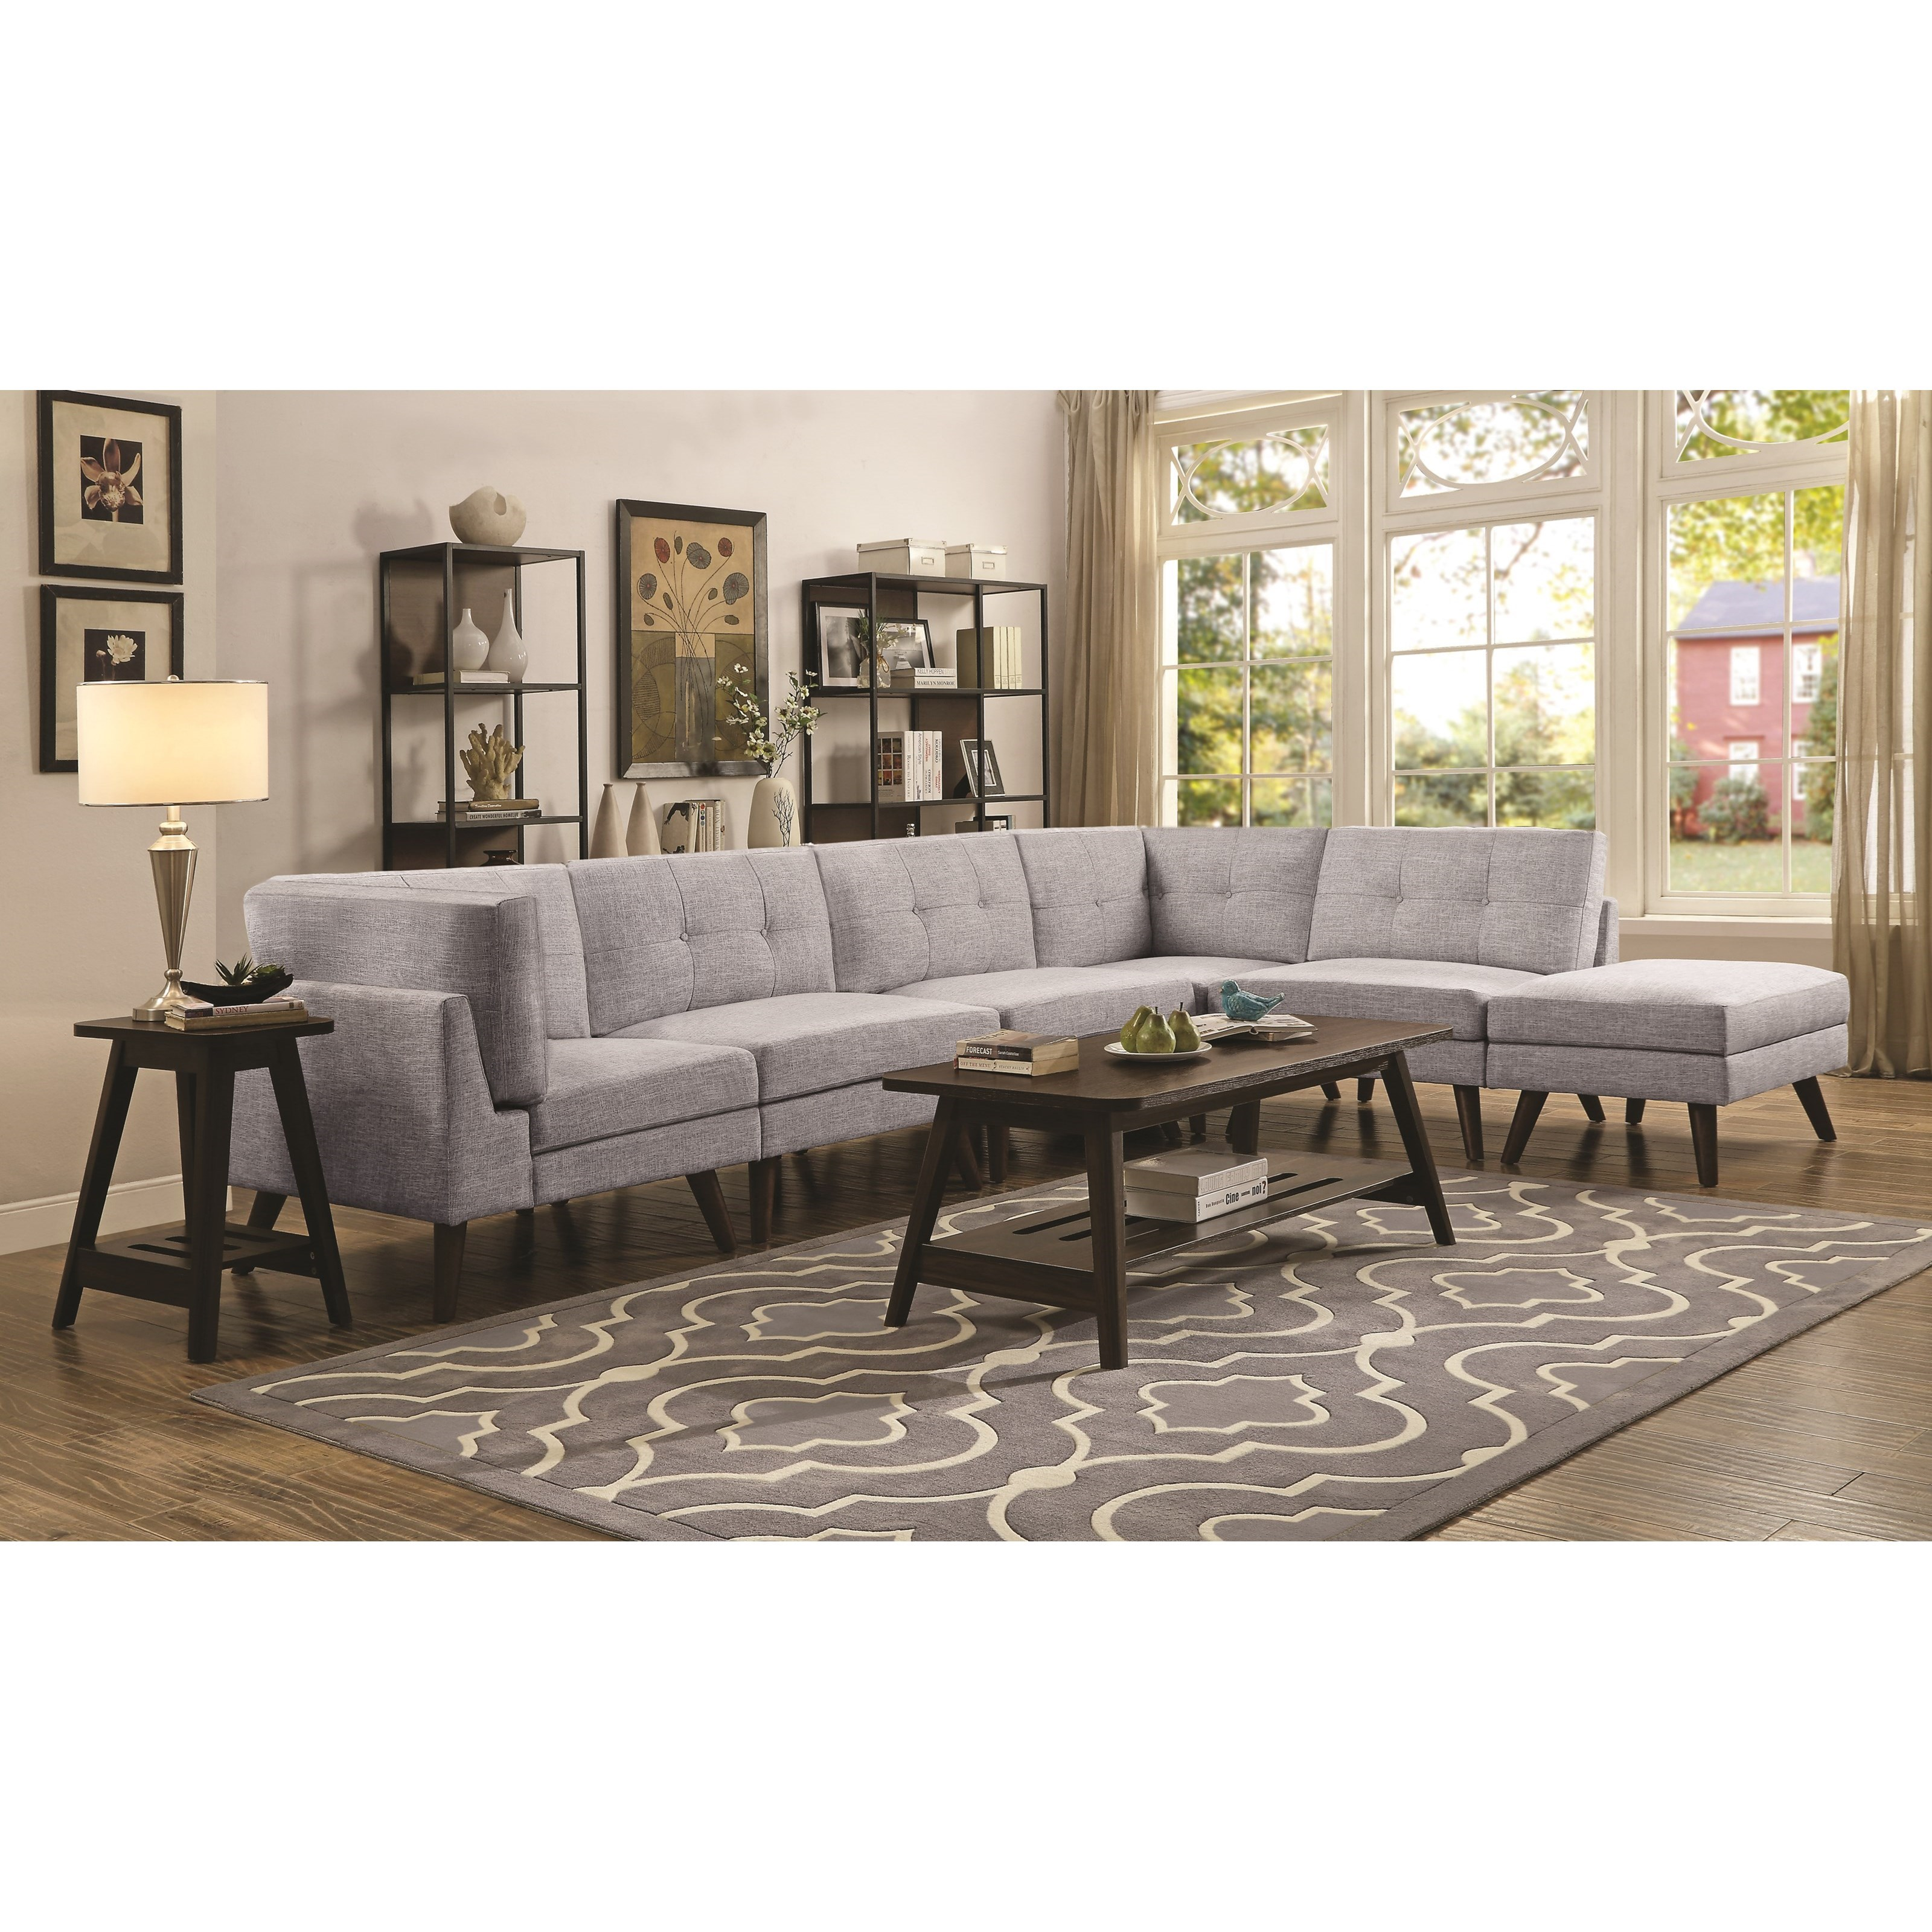 Coaster Churchill Mid Century Modern 4 Seat Sectional With Button Tufted Cushions Value City Furniture Sectional Sofas